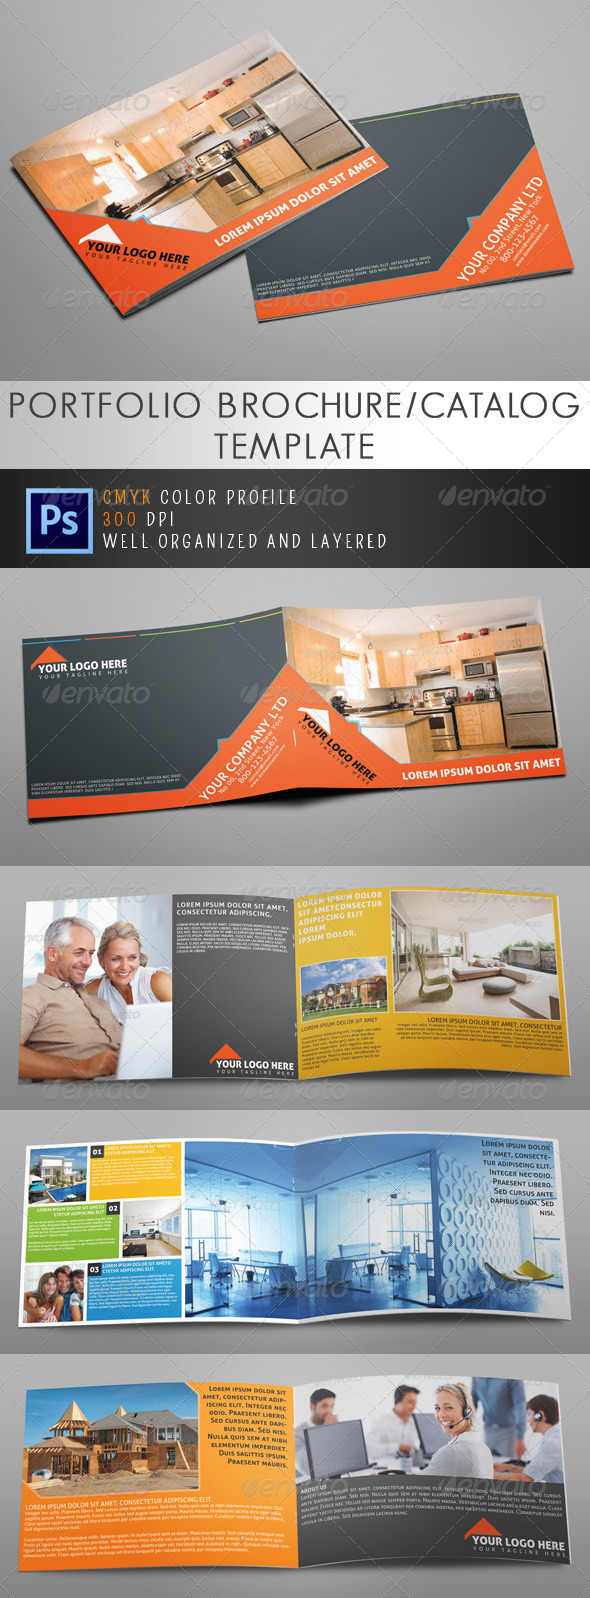 Real Estate Brochure or Catalog - Catalogs Brochures